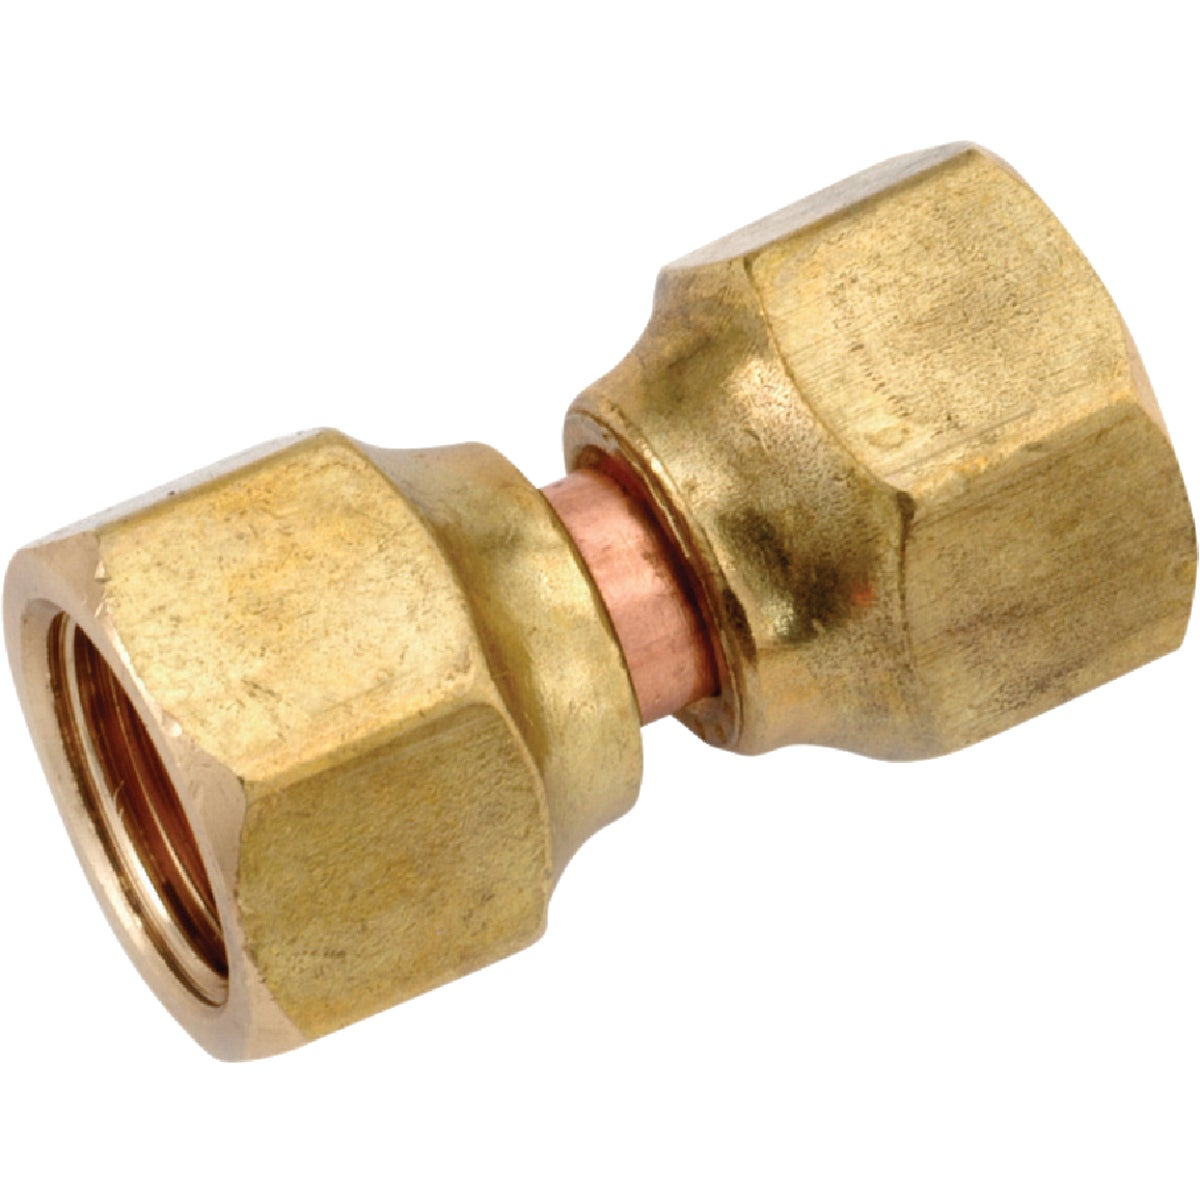 1/2X3/8 SWIVEL CONNECTOR - 754075-0806 by Anderson Metals Corp